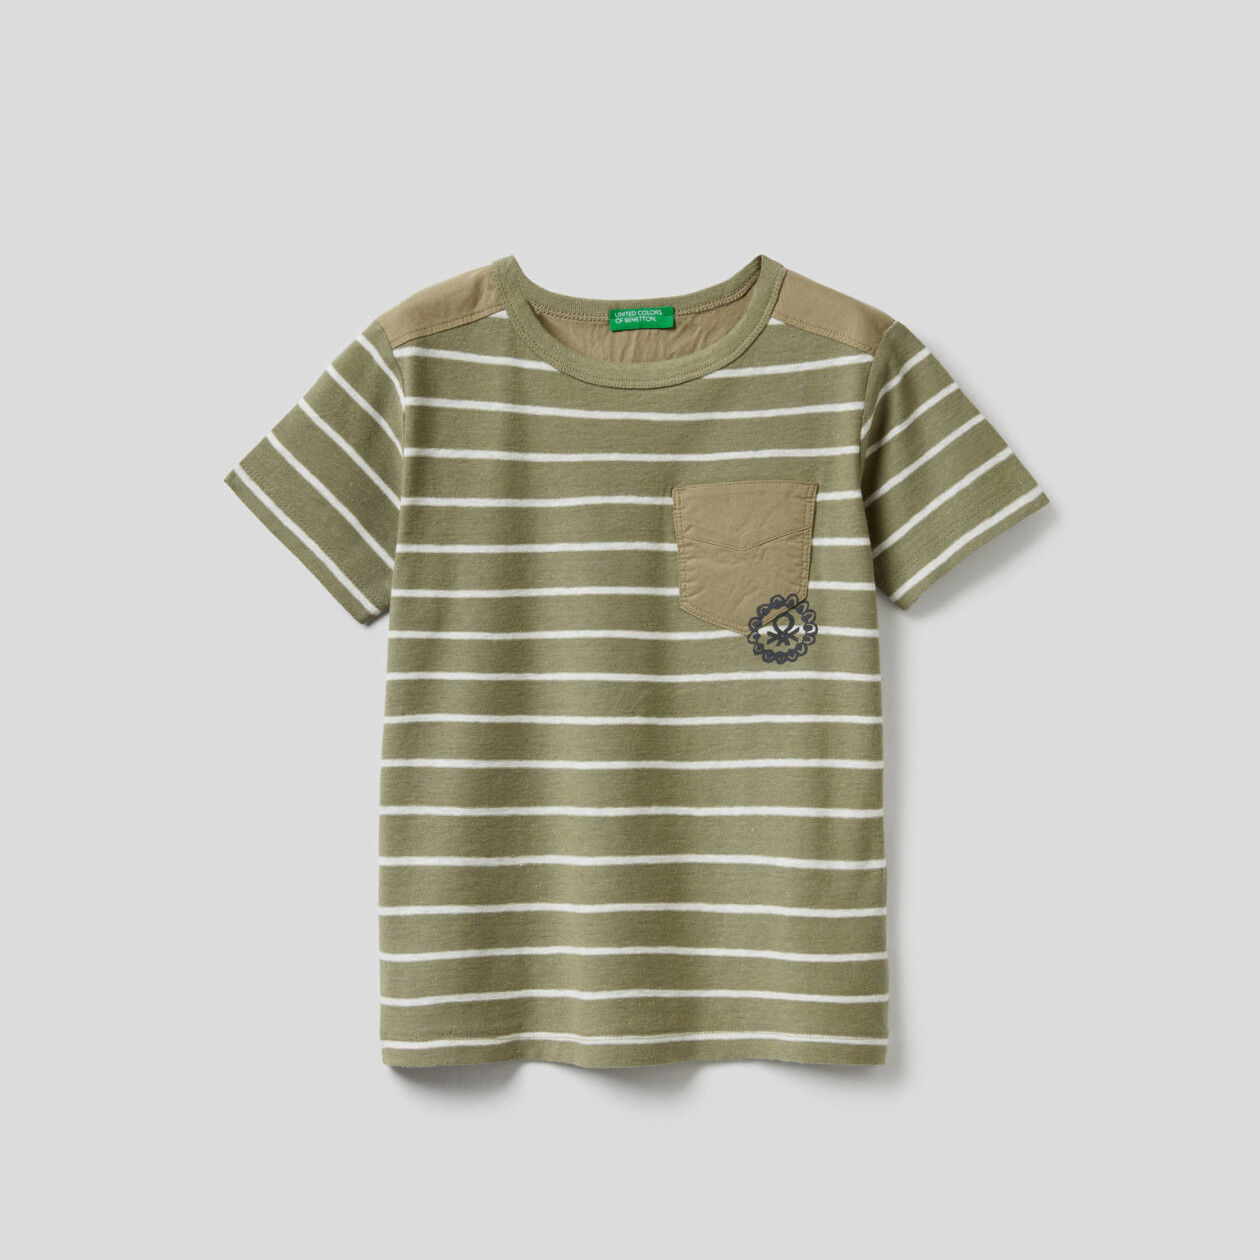 Striped t-shirt in linen blend cotton